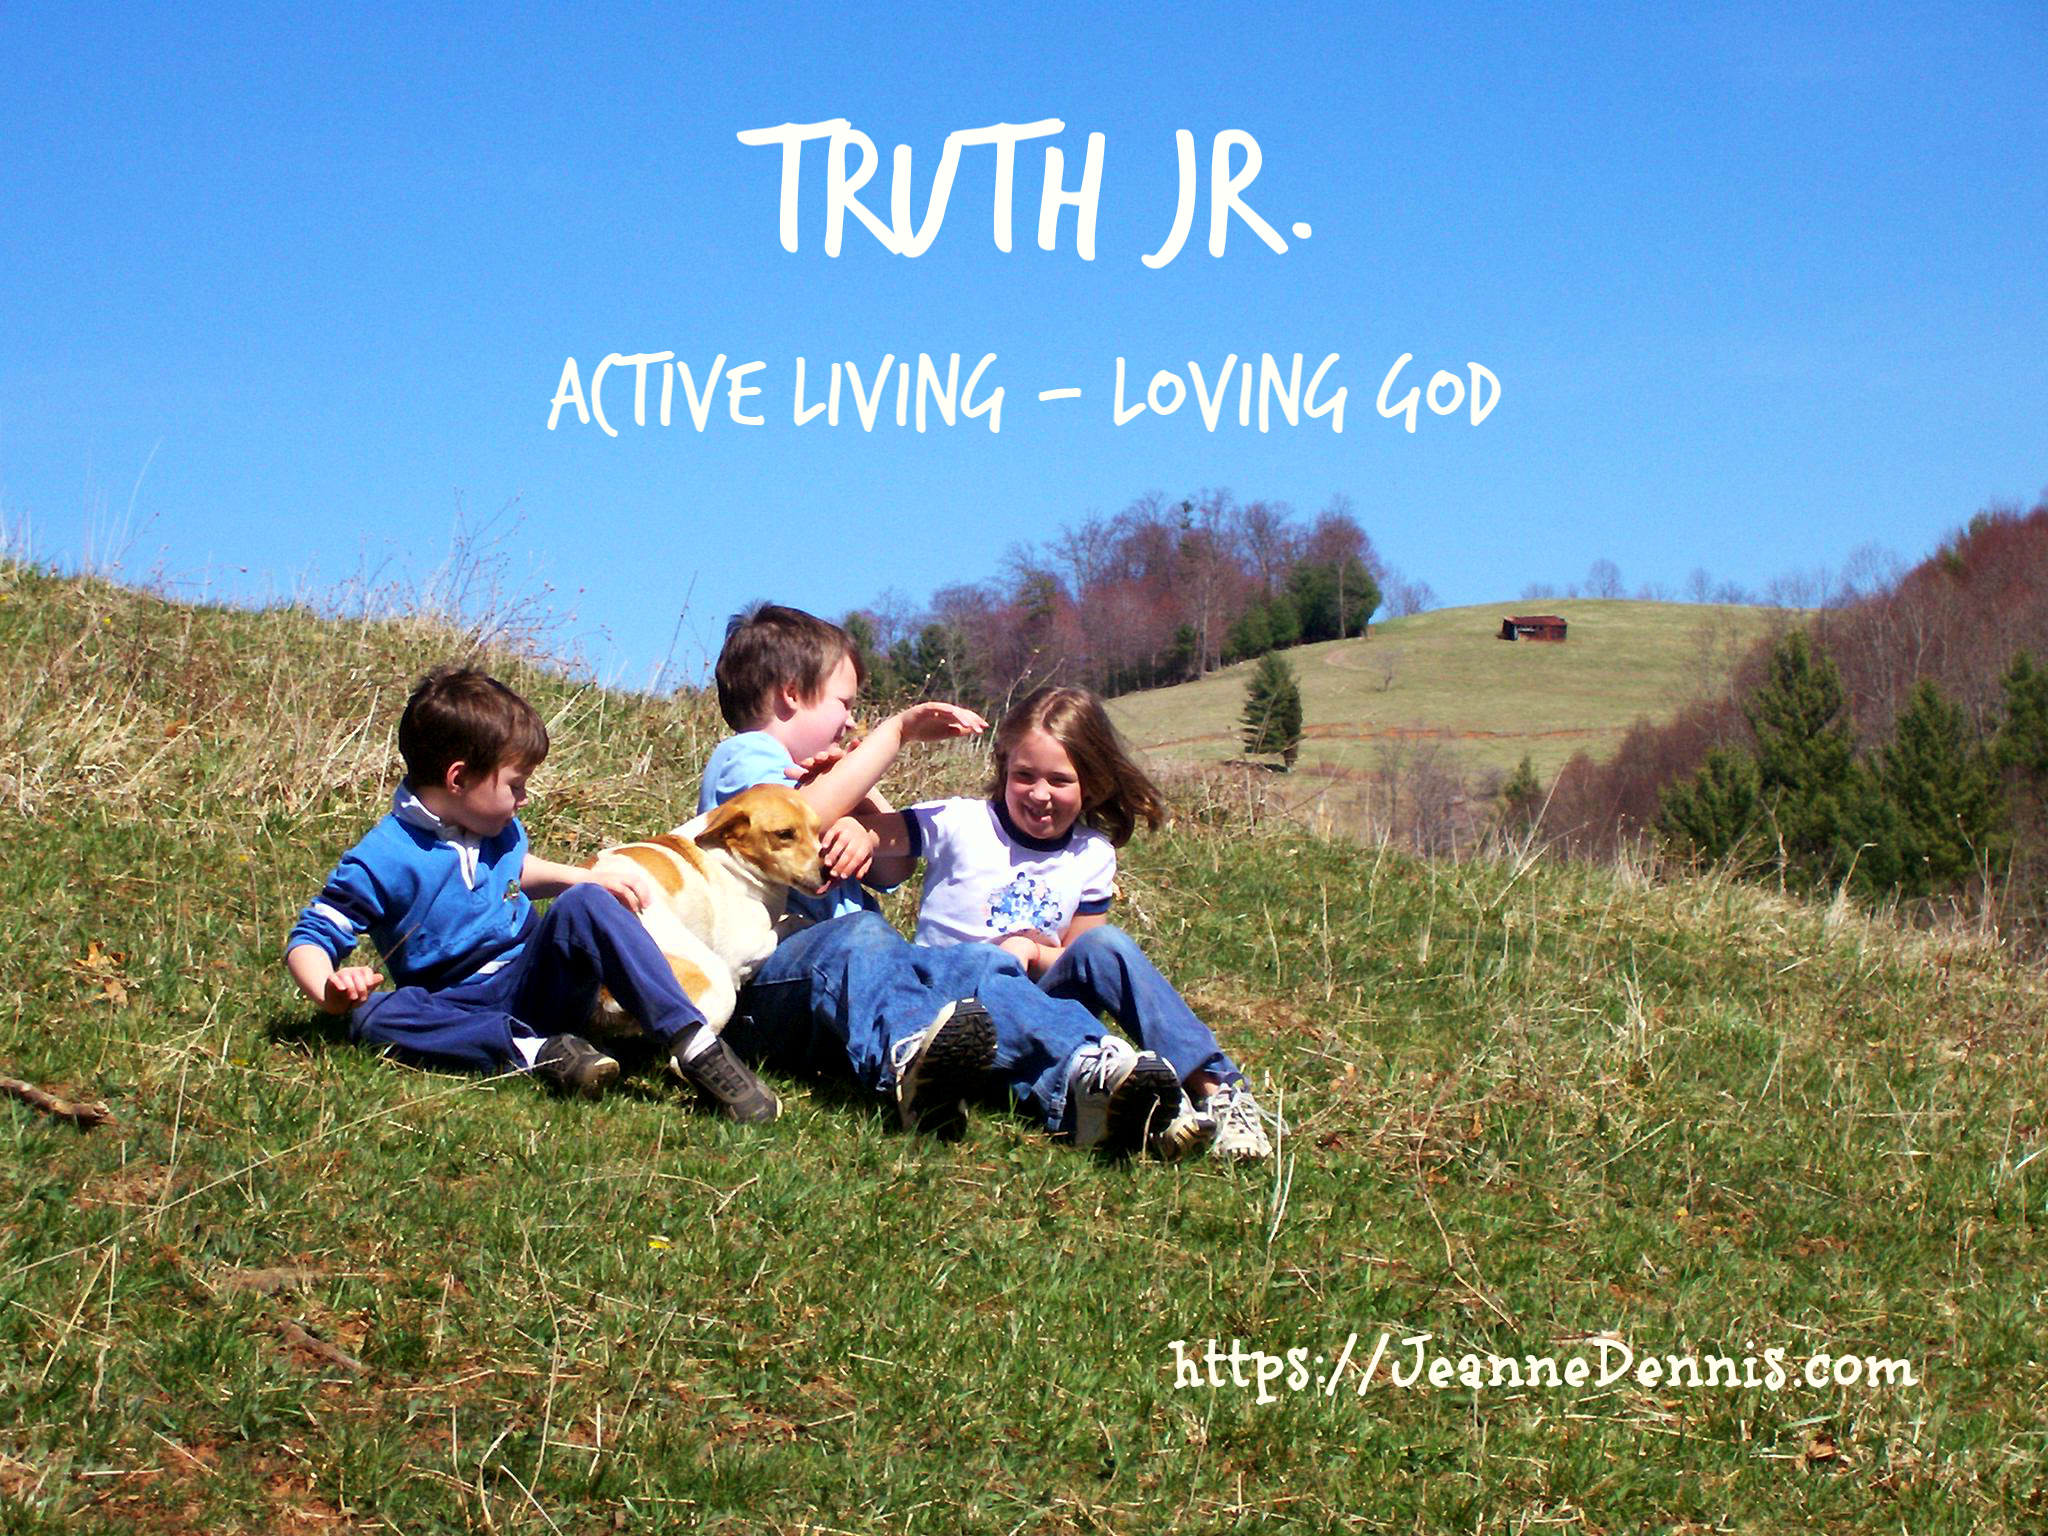 Truth Jr. Active Living - Loving God